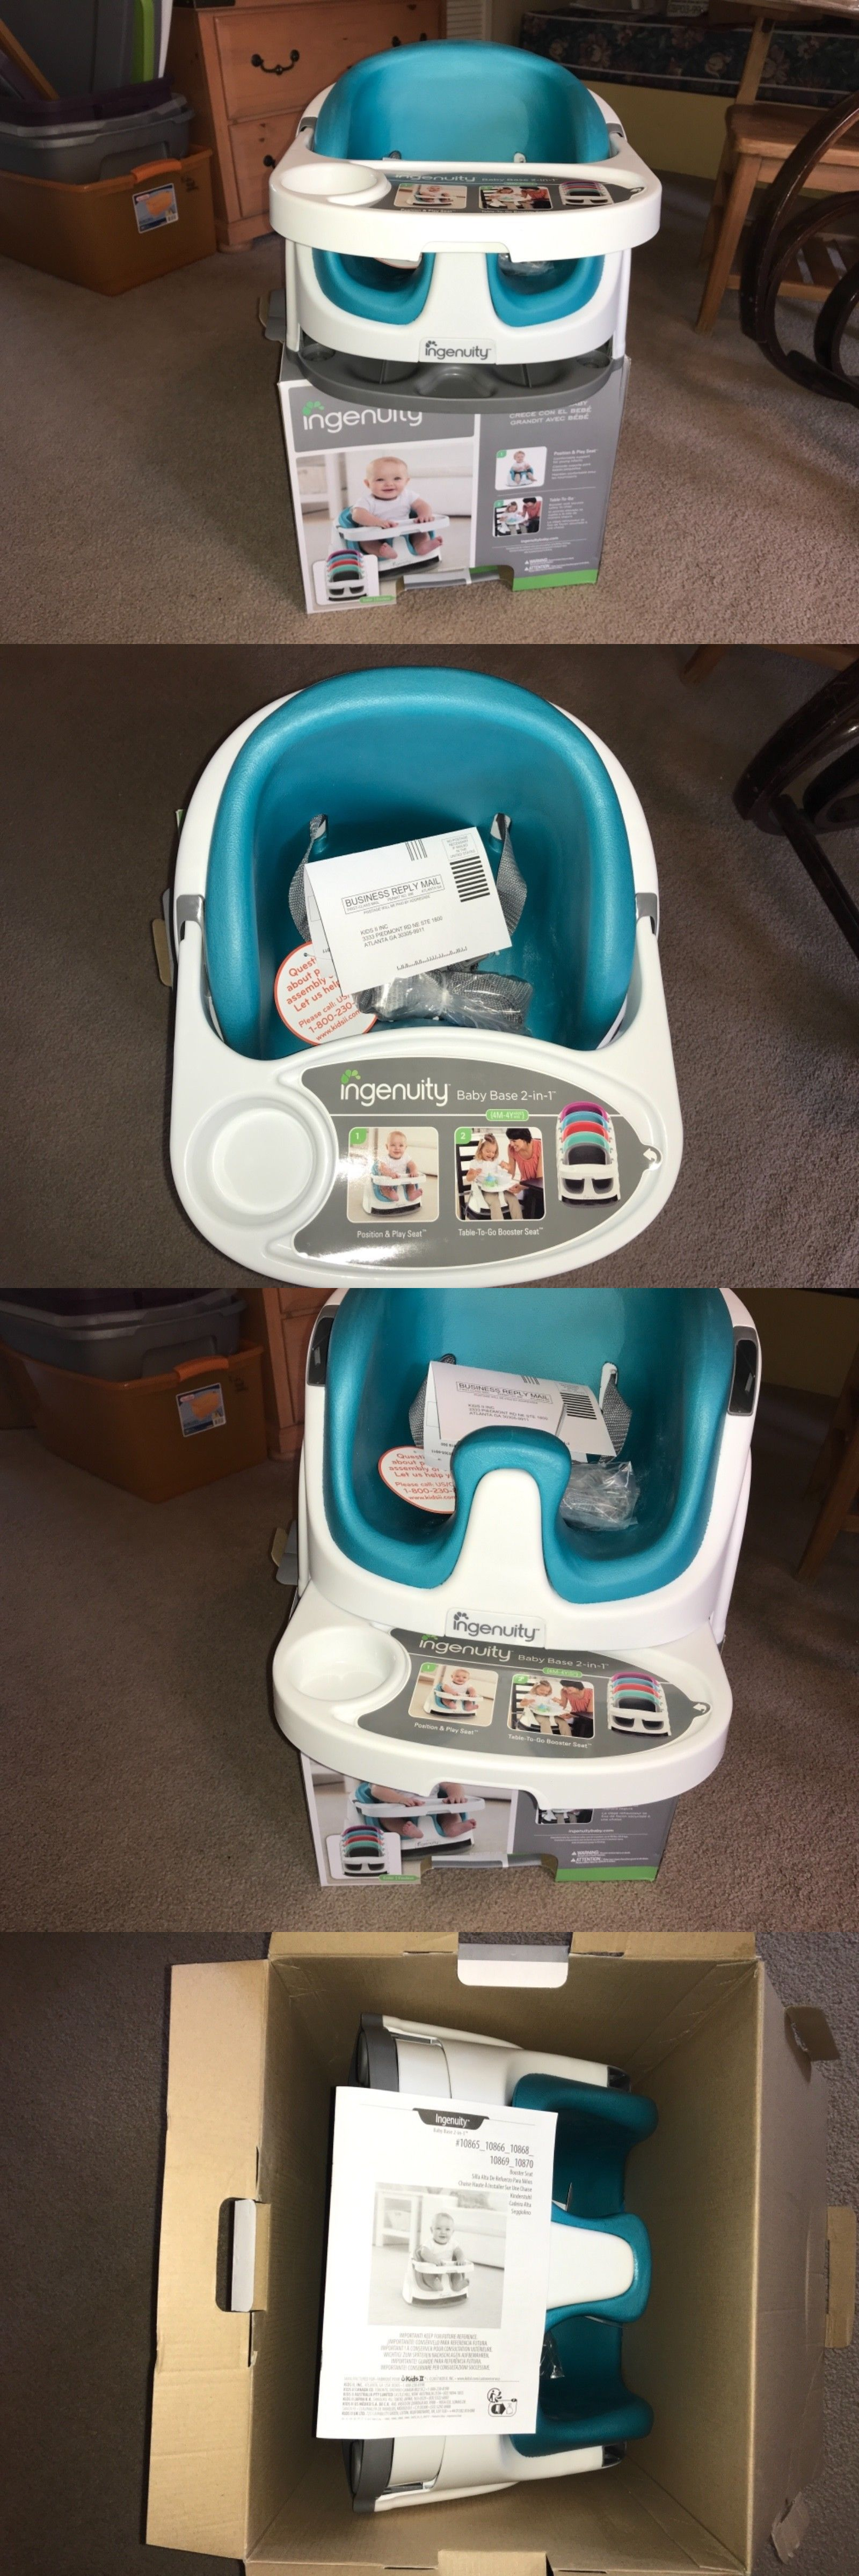 Booster Chairs 134276 New In BoxIngenuity Baby Base Chair 2 1 Infant To ToddlerTeal BUY IT NOW ONLY 4499 On EBay